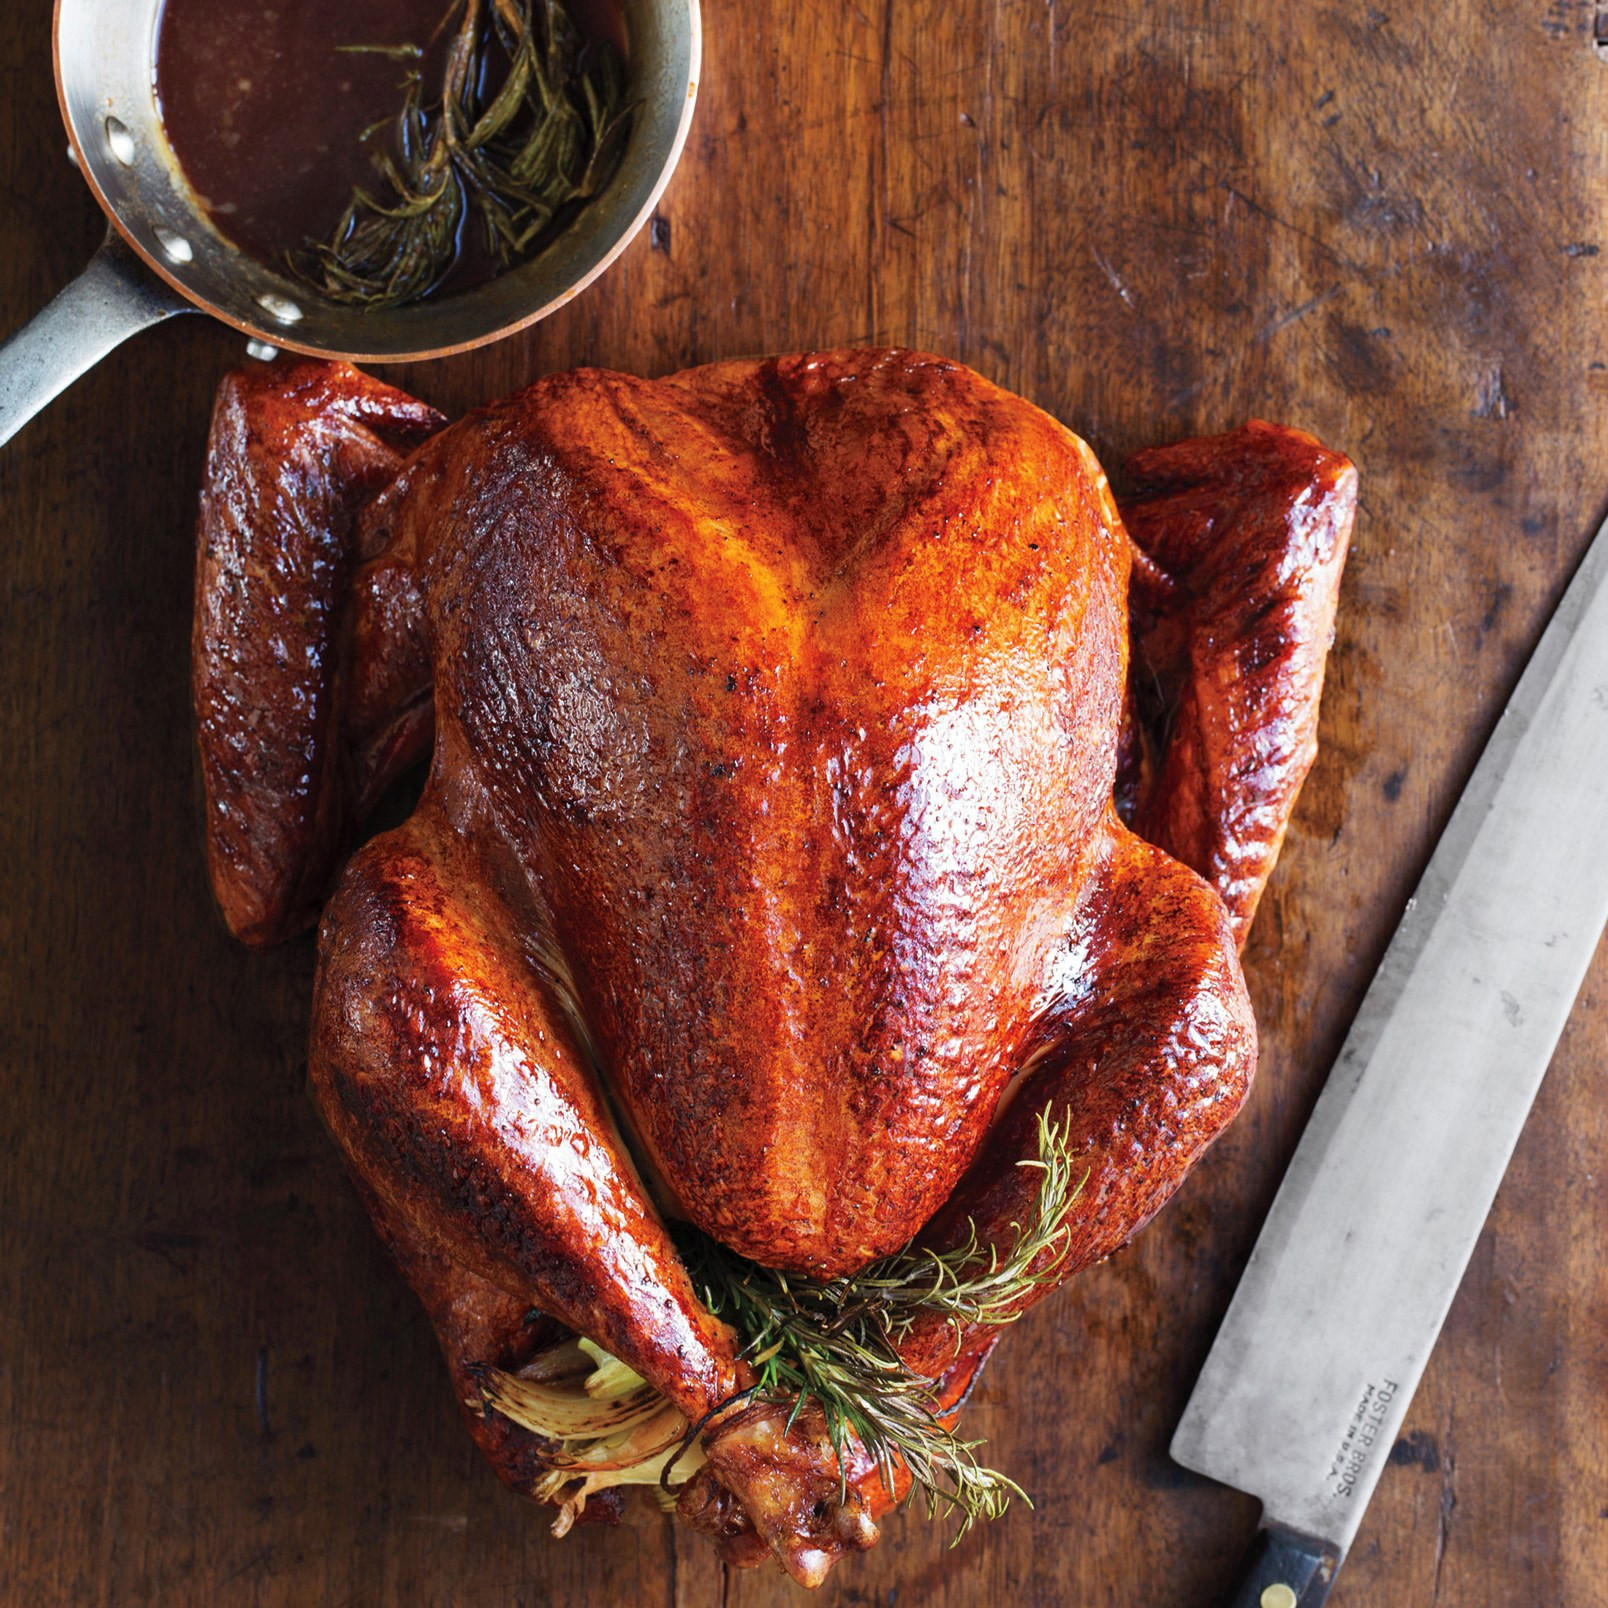 Roast Turkey Recipes Thanksgiving  A Simple Roast Turkey recipe